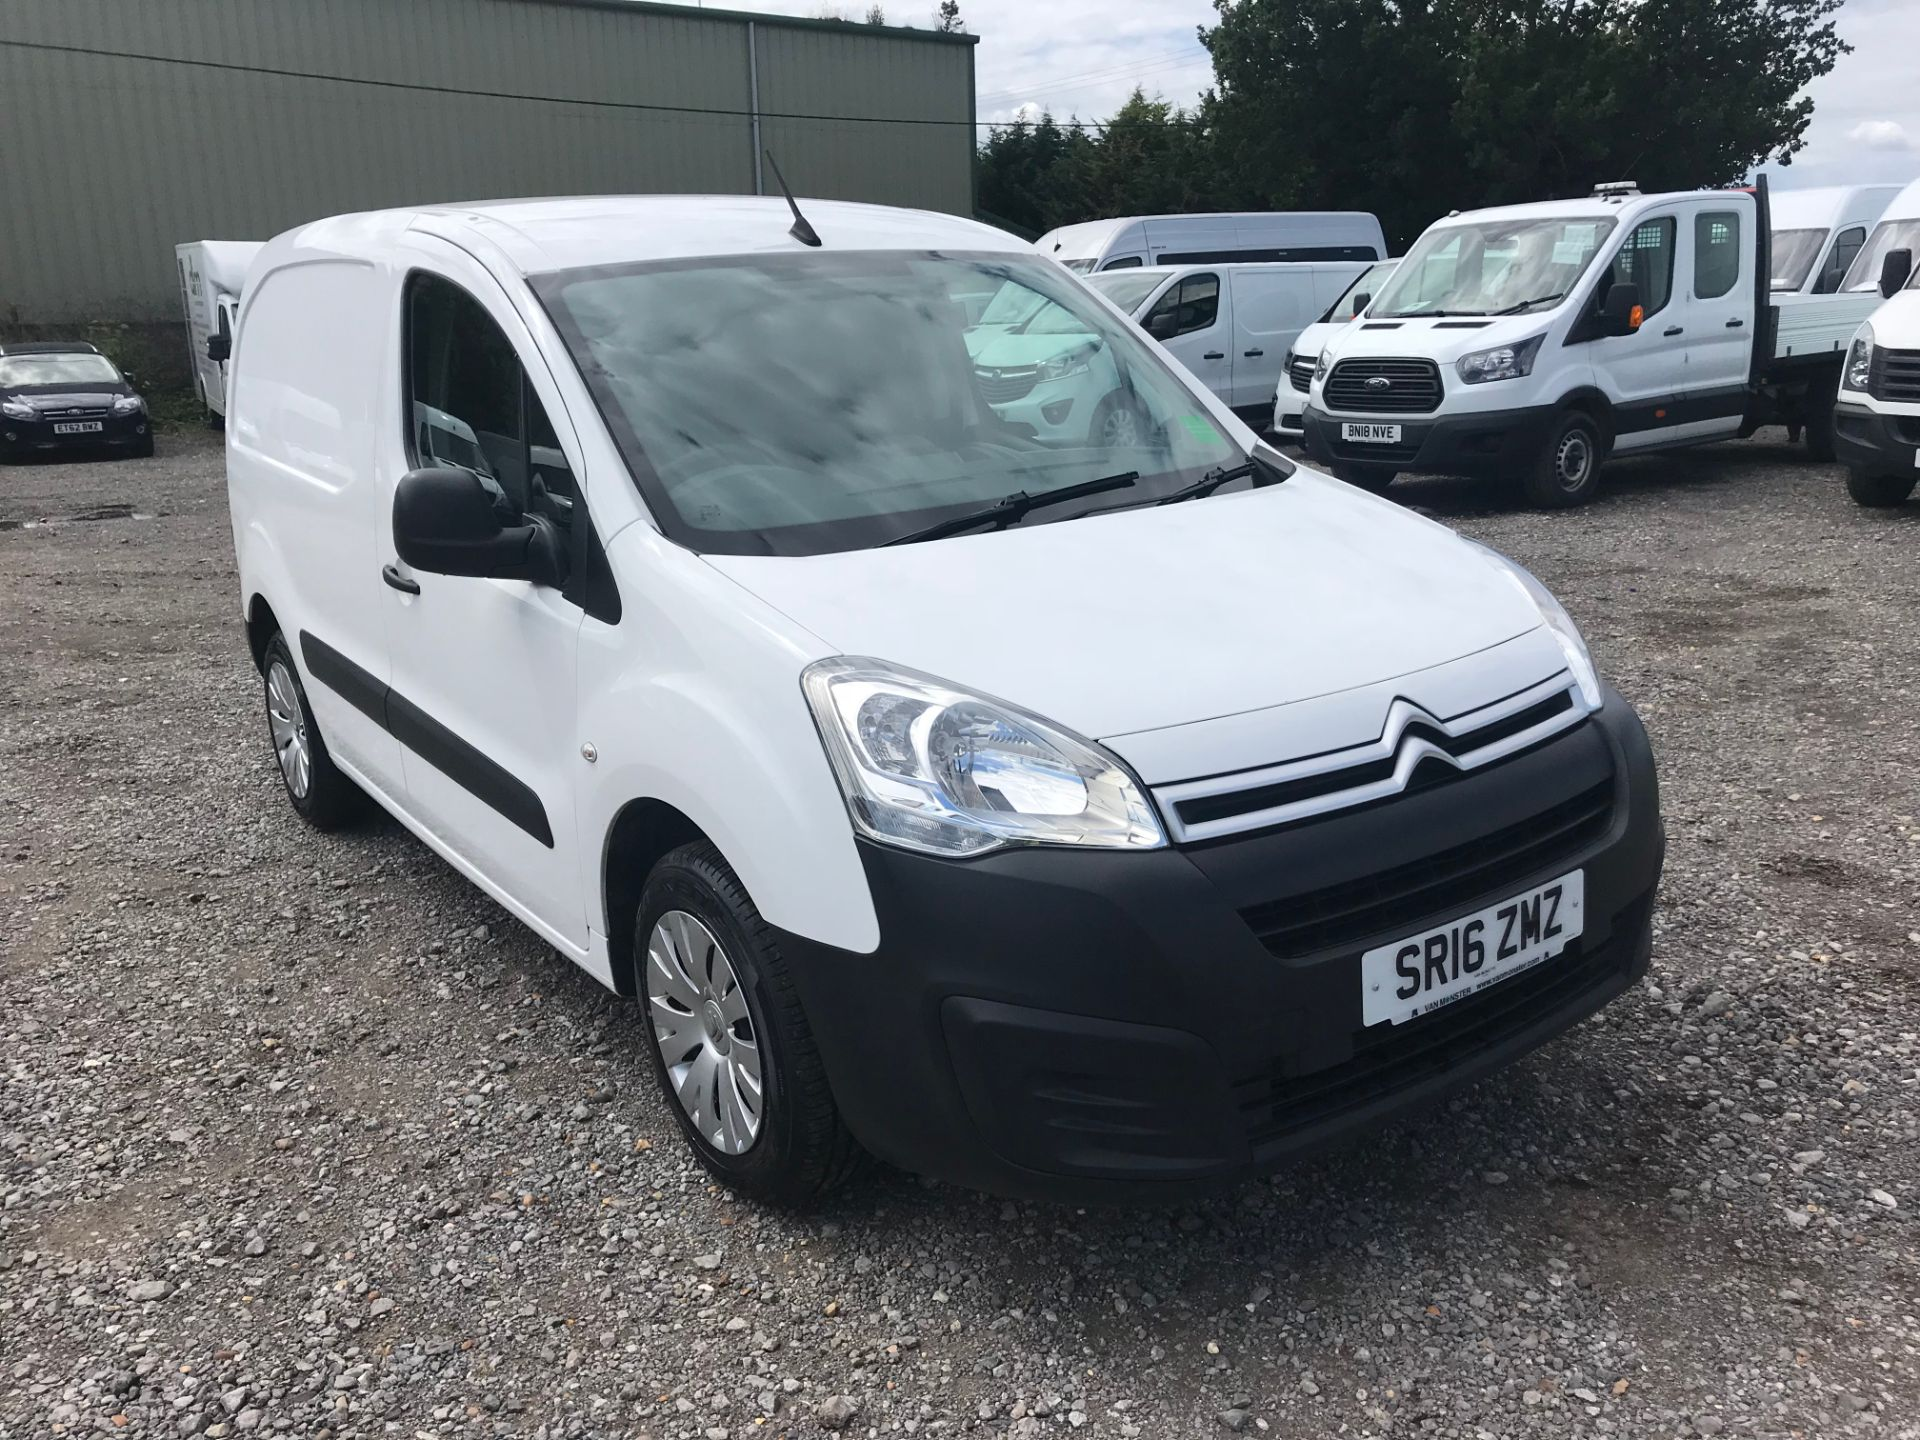 2016 Citroen Berlingo  L1 DIESEL 1.6 HDI 625KG ENTERPRISE 75PS EURO 4/5 (SR16ZMZ)